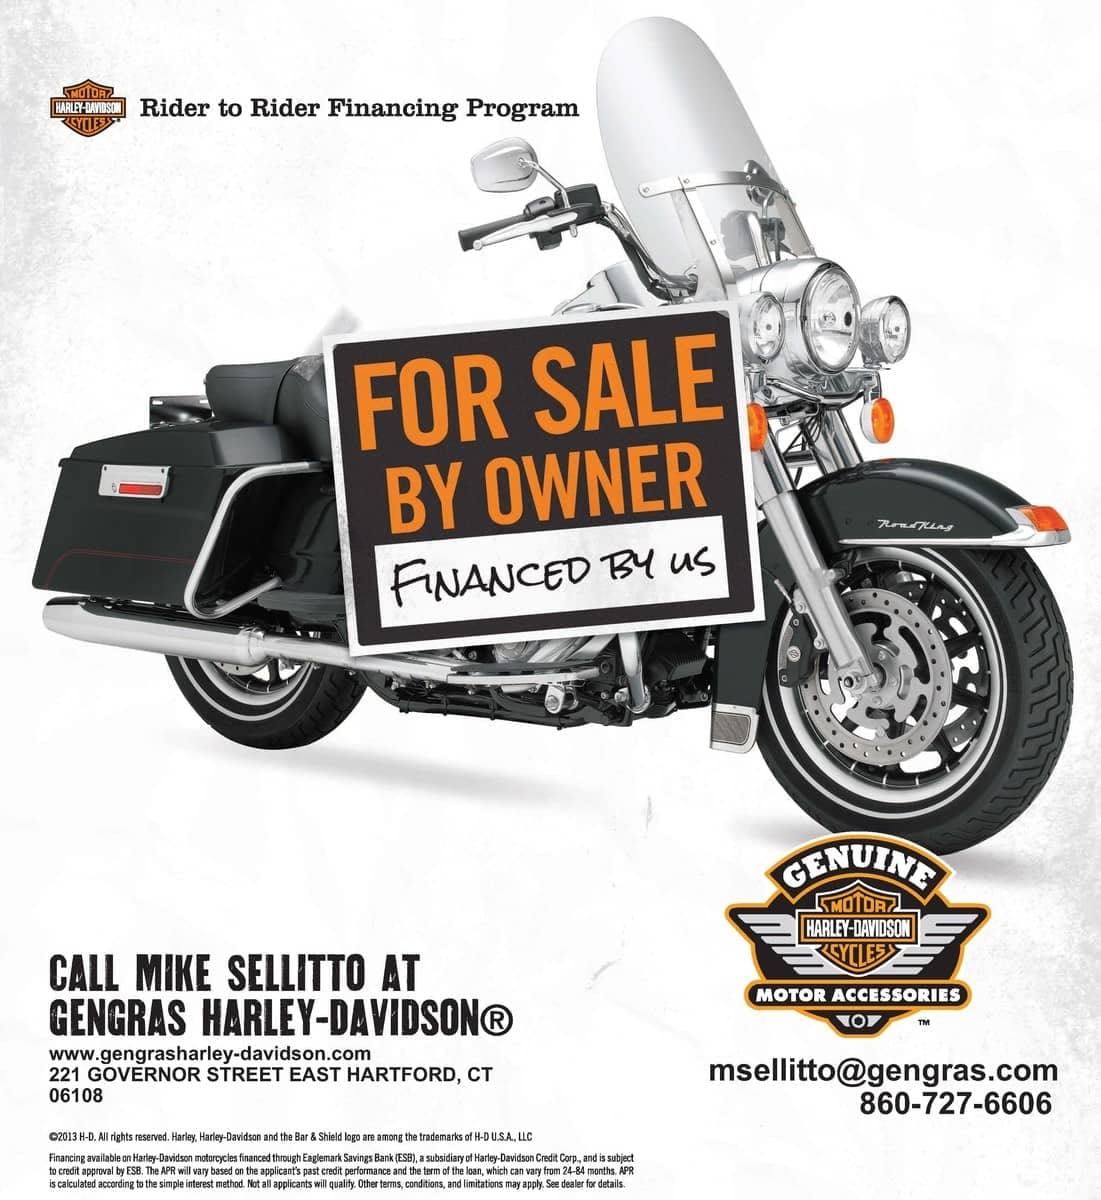 Private Purchase Financing